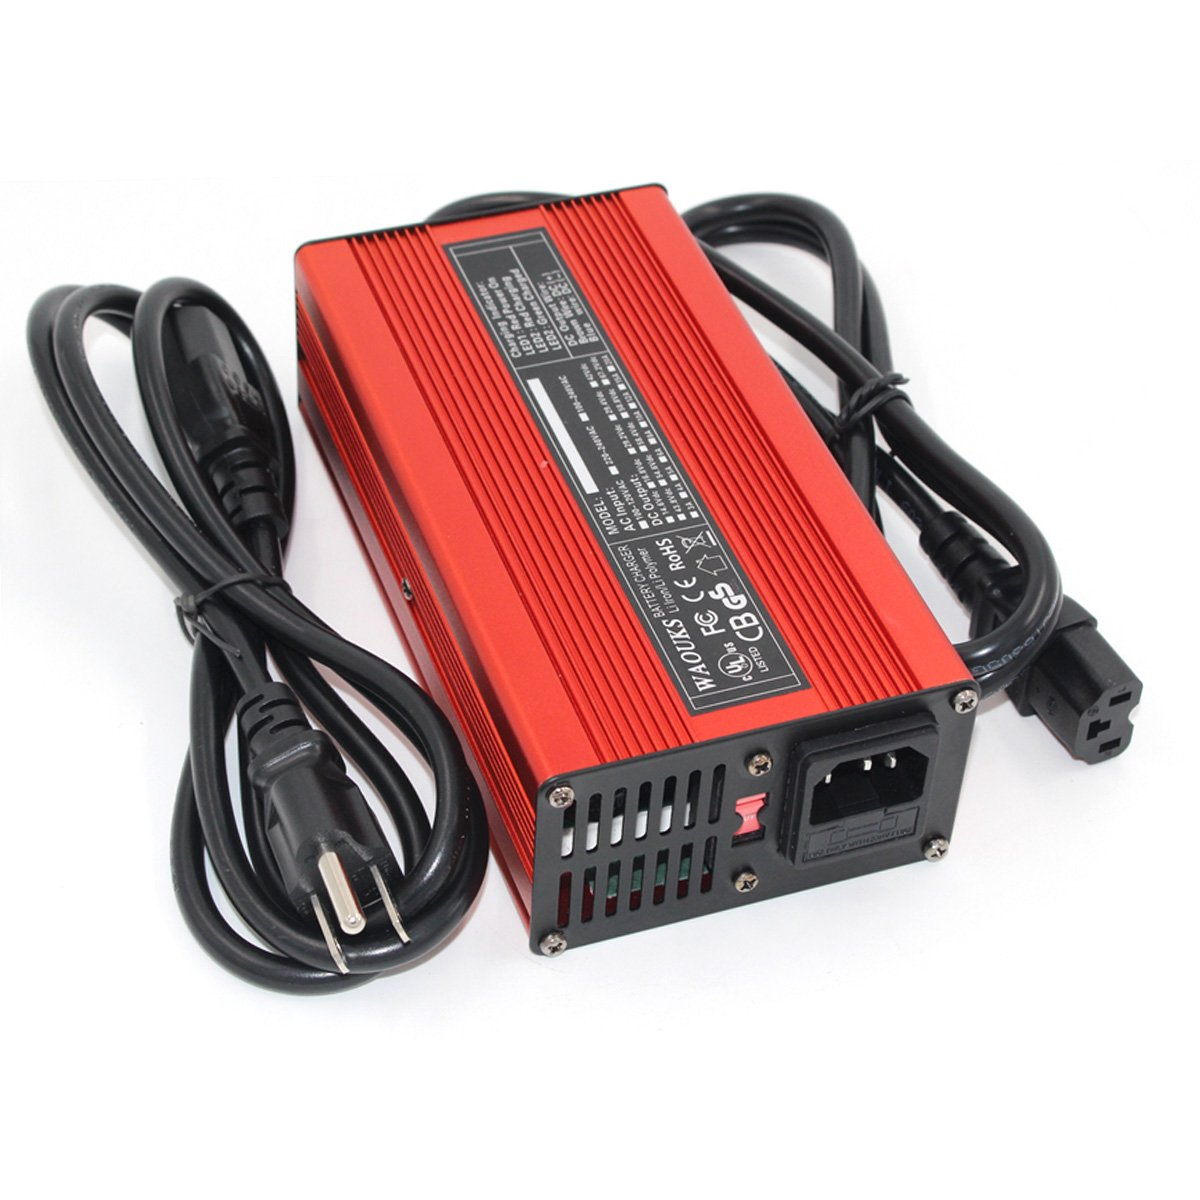 67.2V 2A Charger 60V Li-ion Battery Smart Charger 16S Red Aluminum shell With fan Battery pack charger Input 100VAC-240VAC